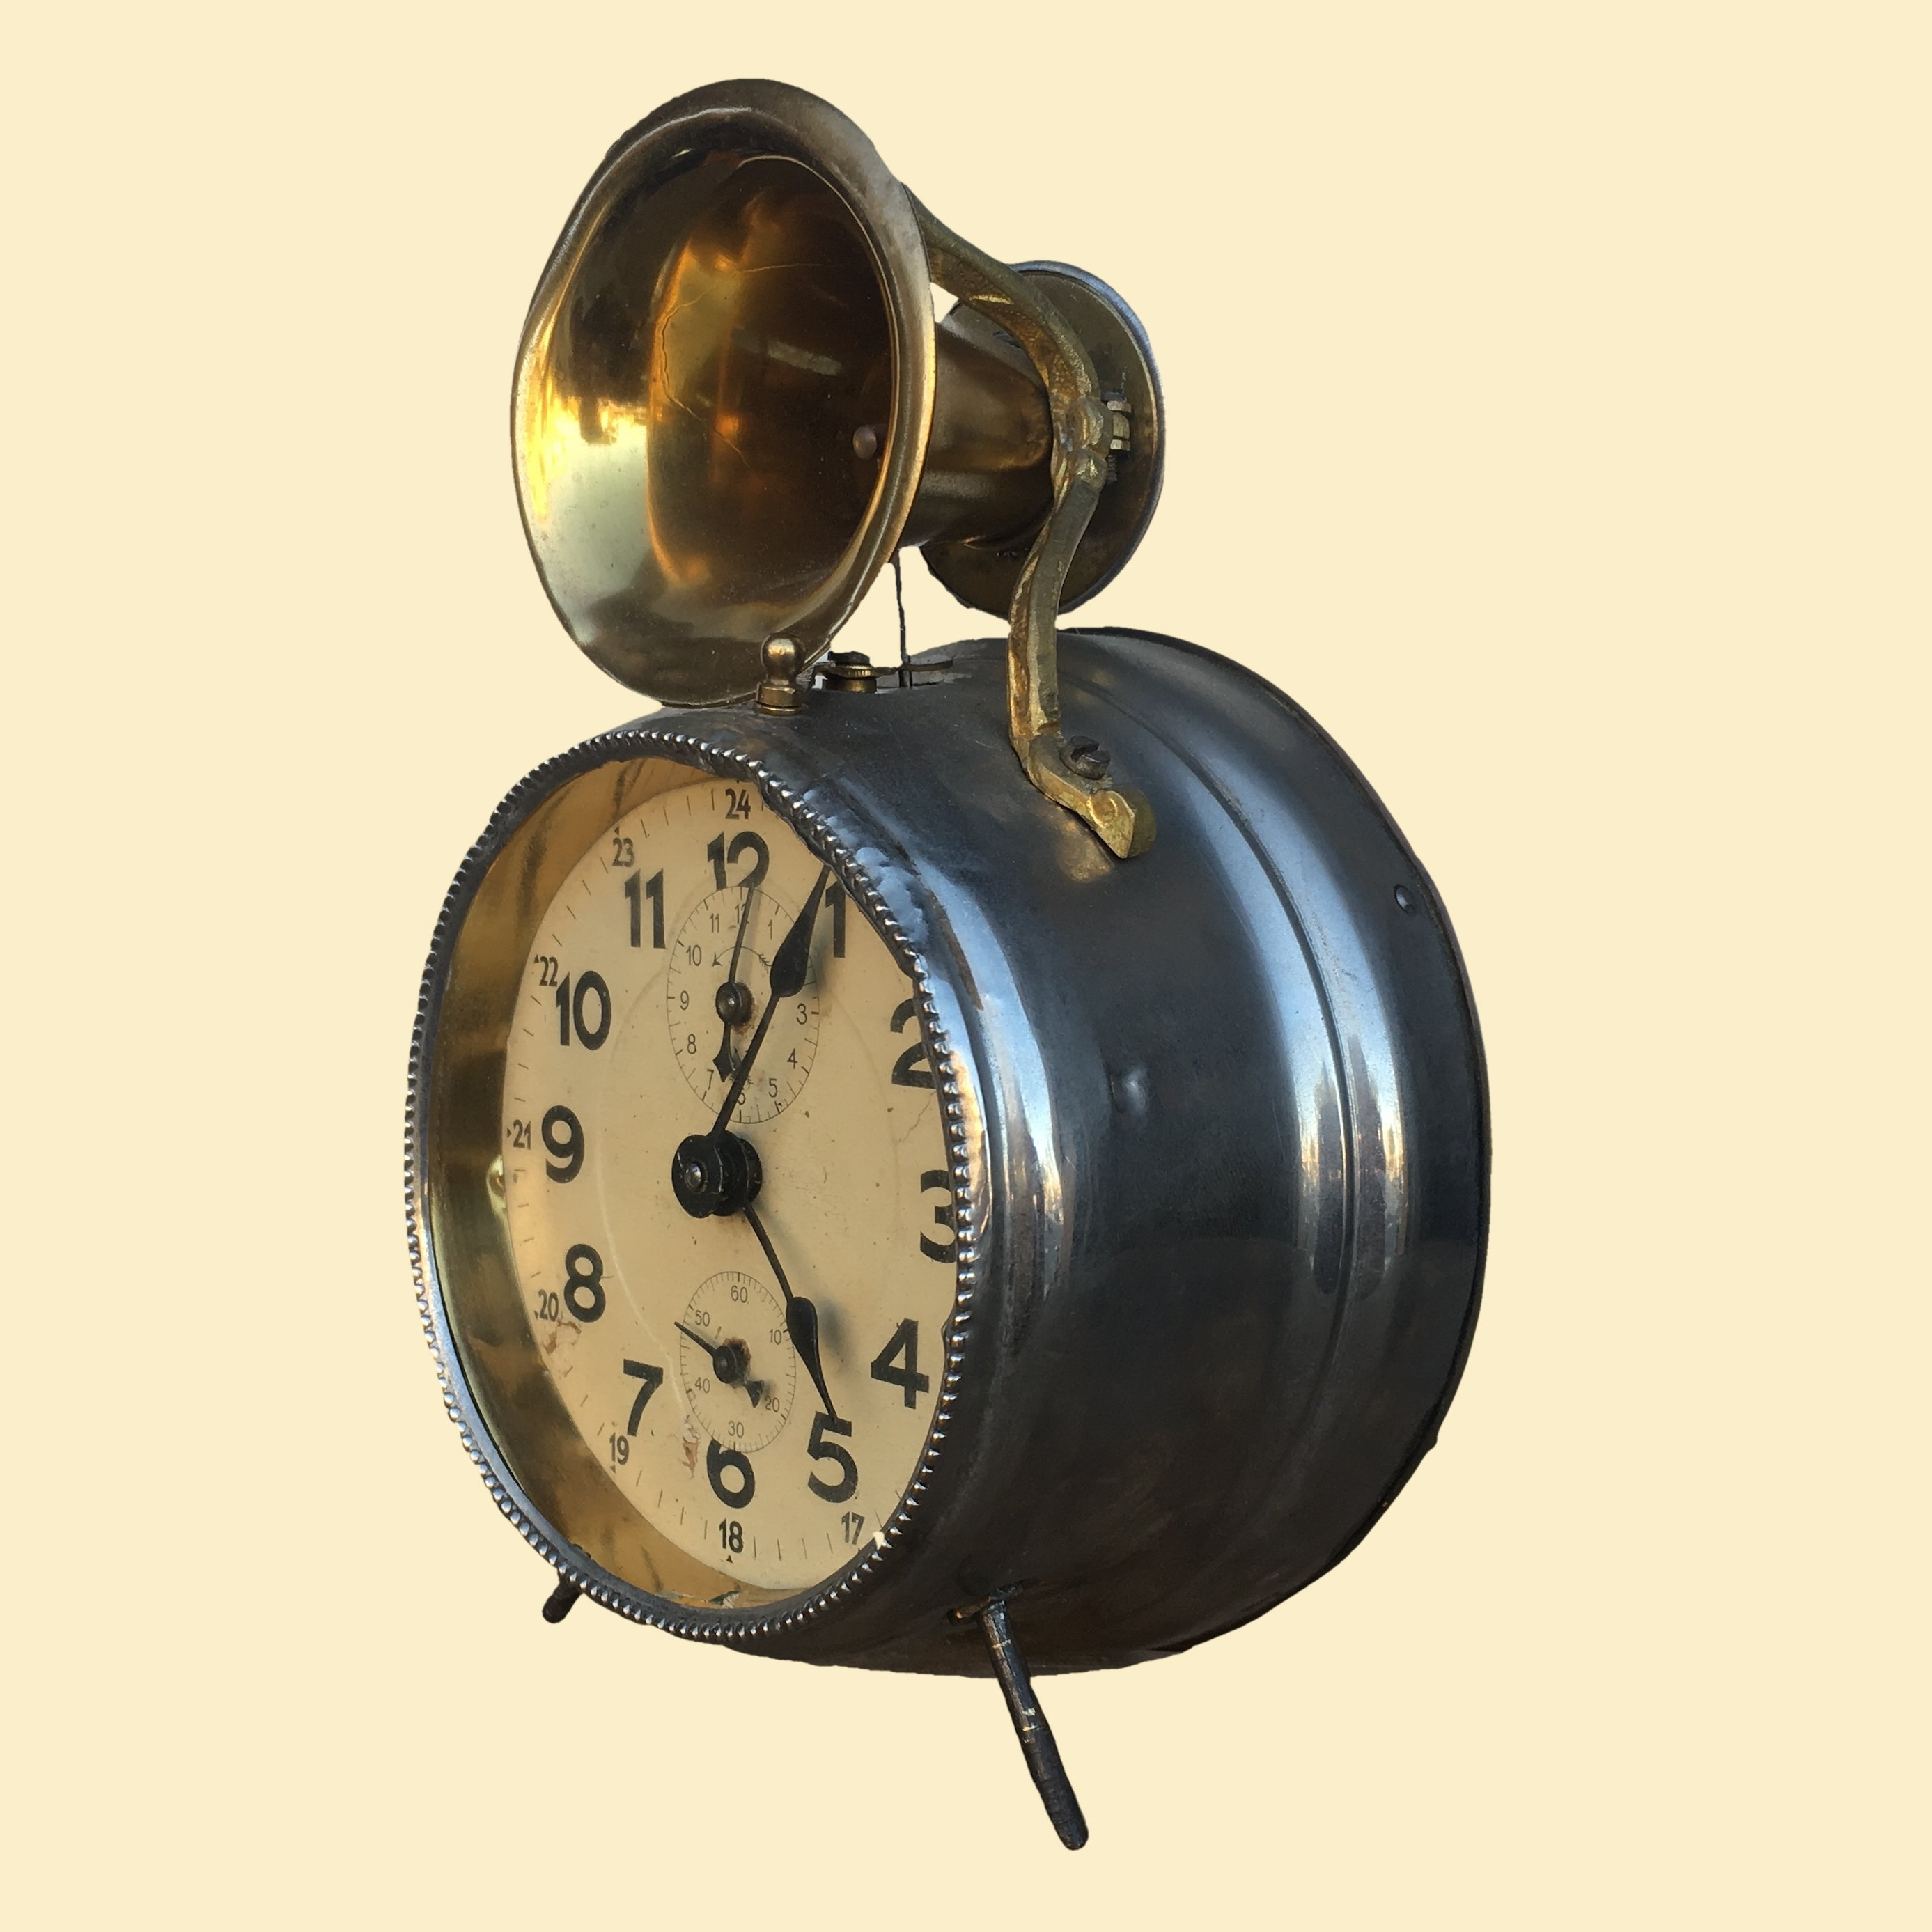 20% OFF - Antique Vintage Horn-Top Alarm Clock As Is 00203